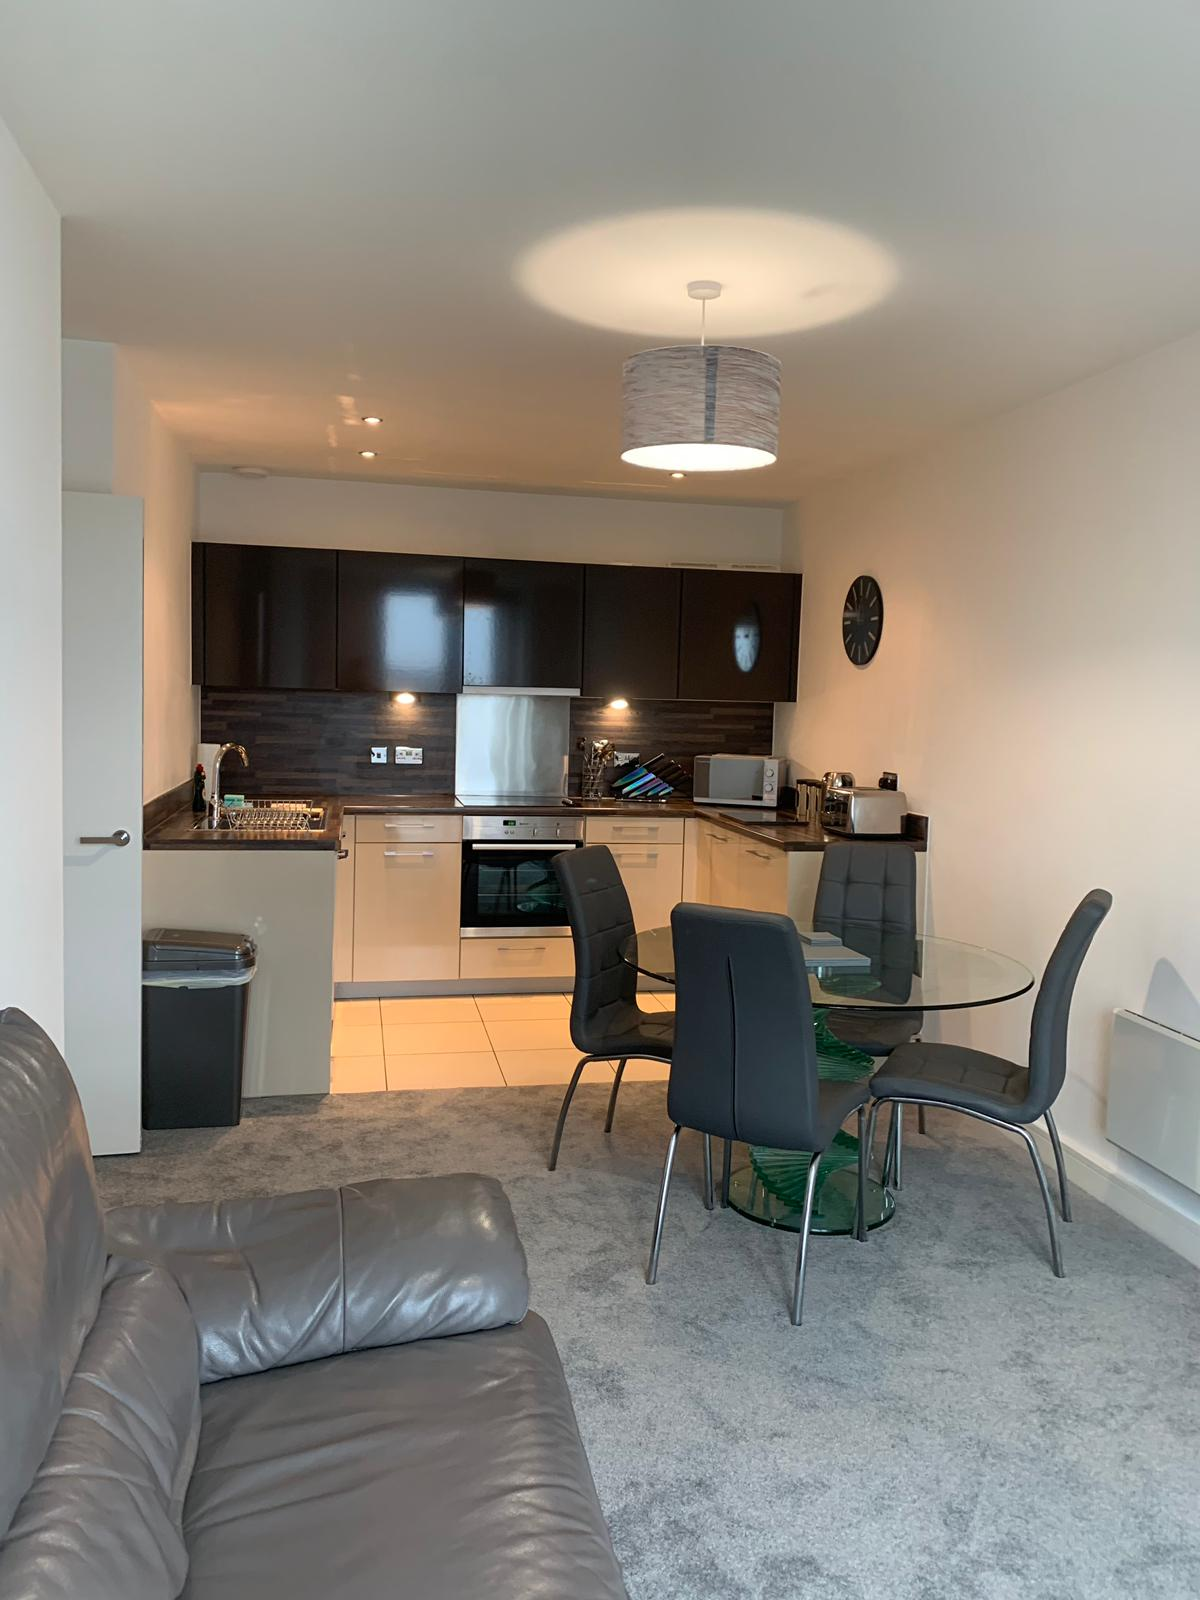 Dining table at KD Tower Serviced Apartments